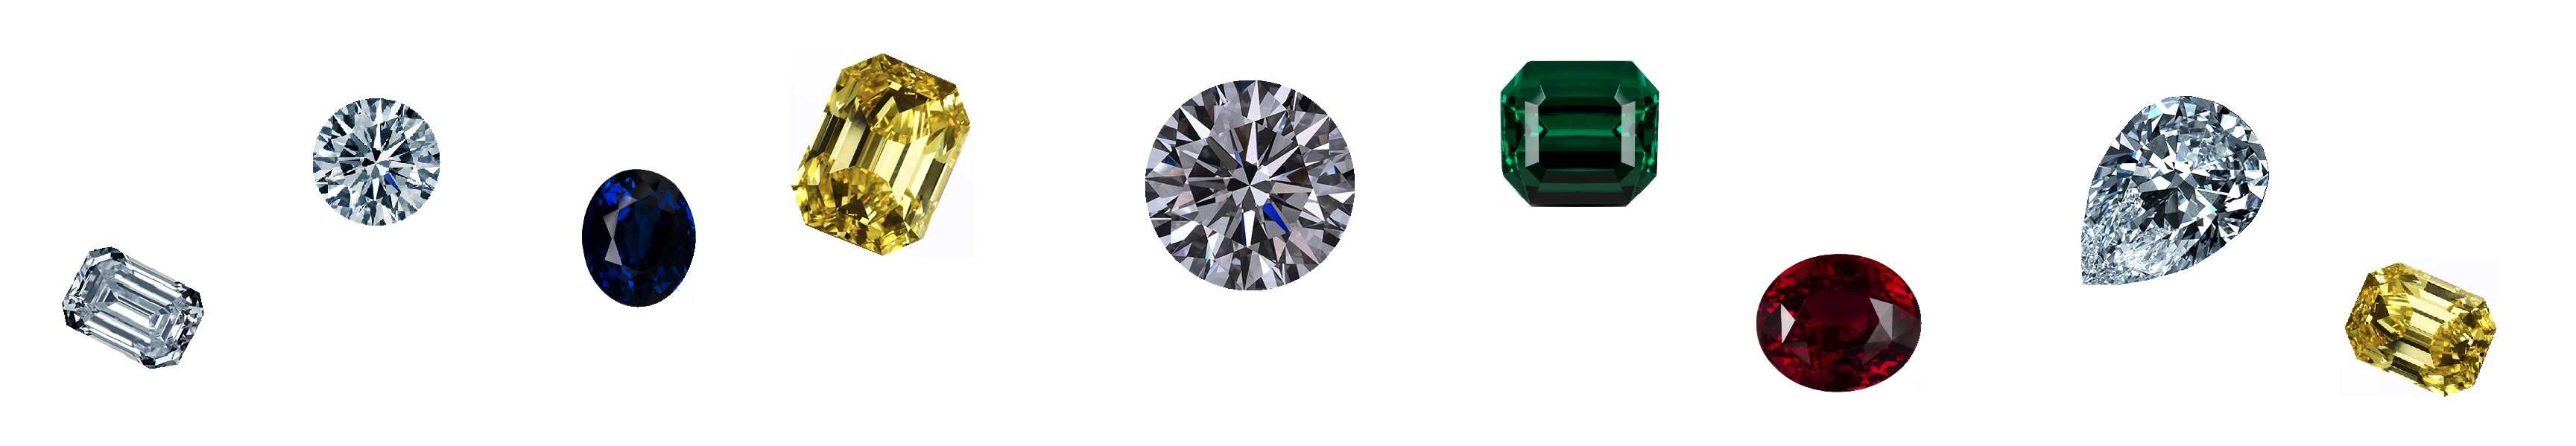 gemstones : diamonds, rubies, sapphires, emeralds